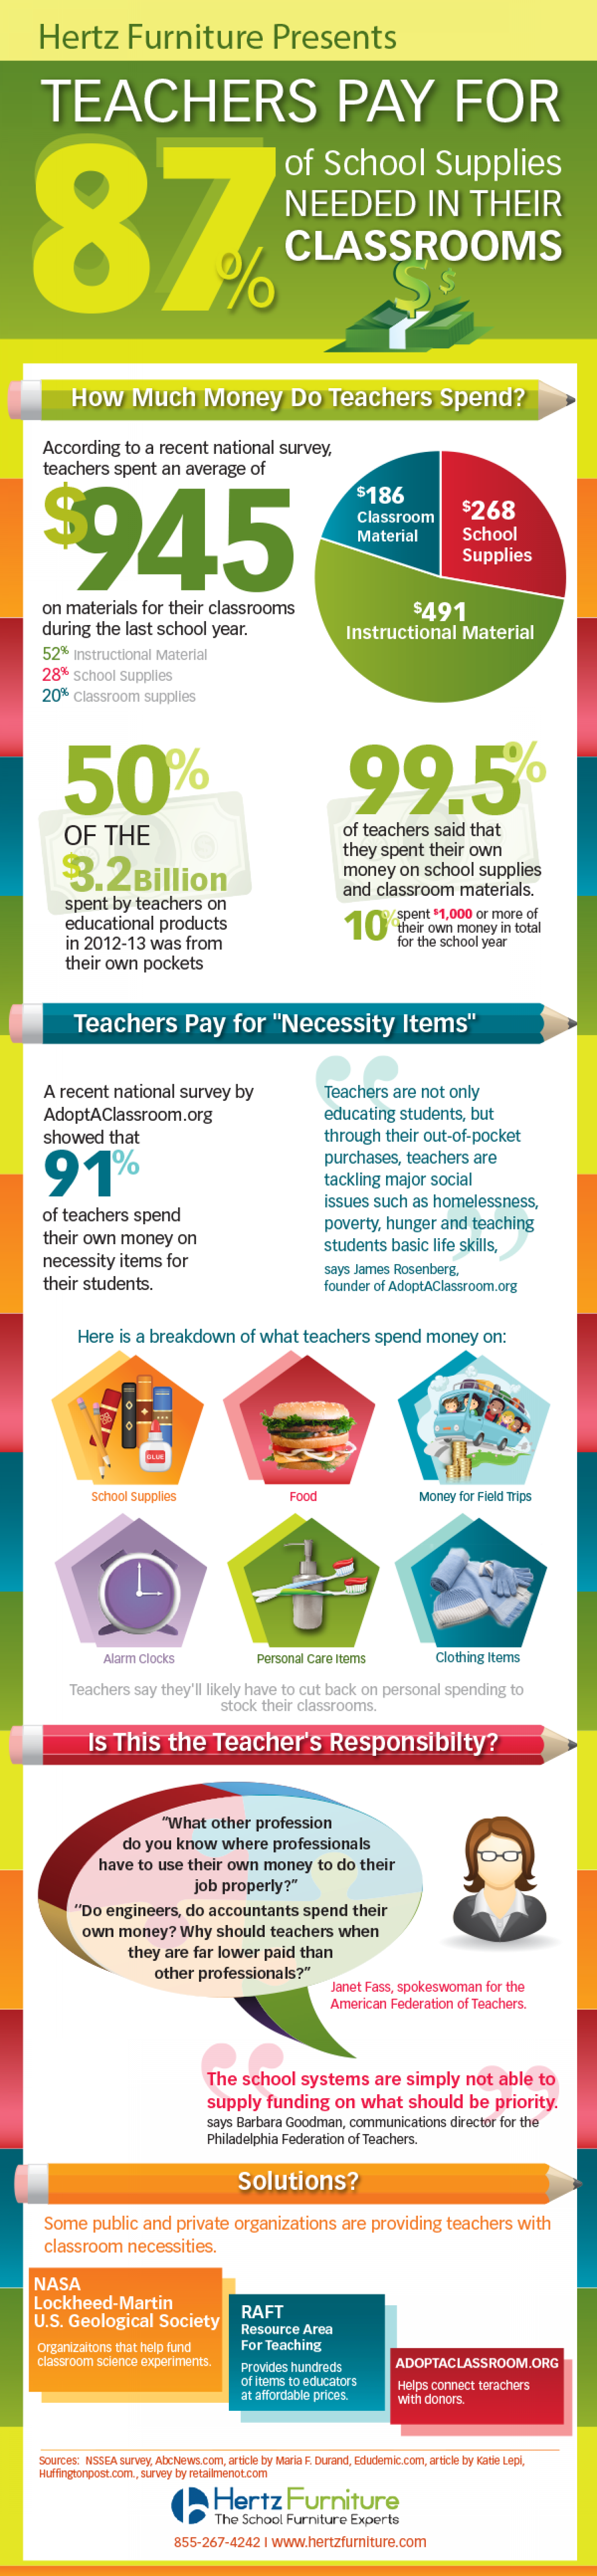 Teachers pay for 87% of the school supplies needed in their classrooms Infographic